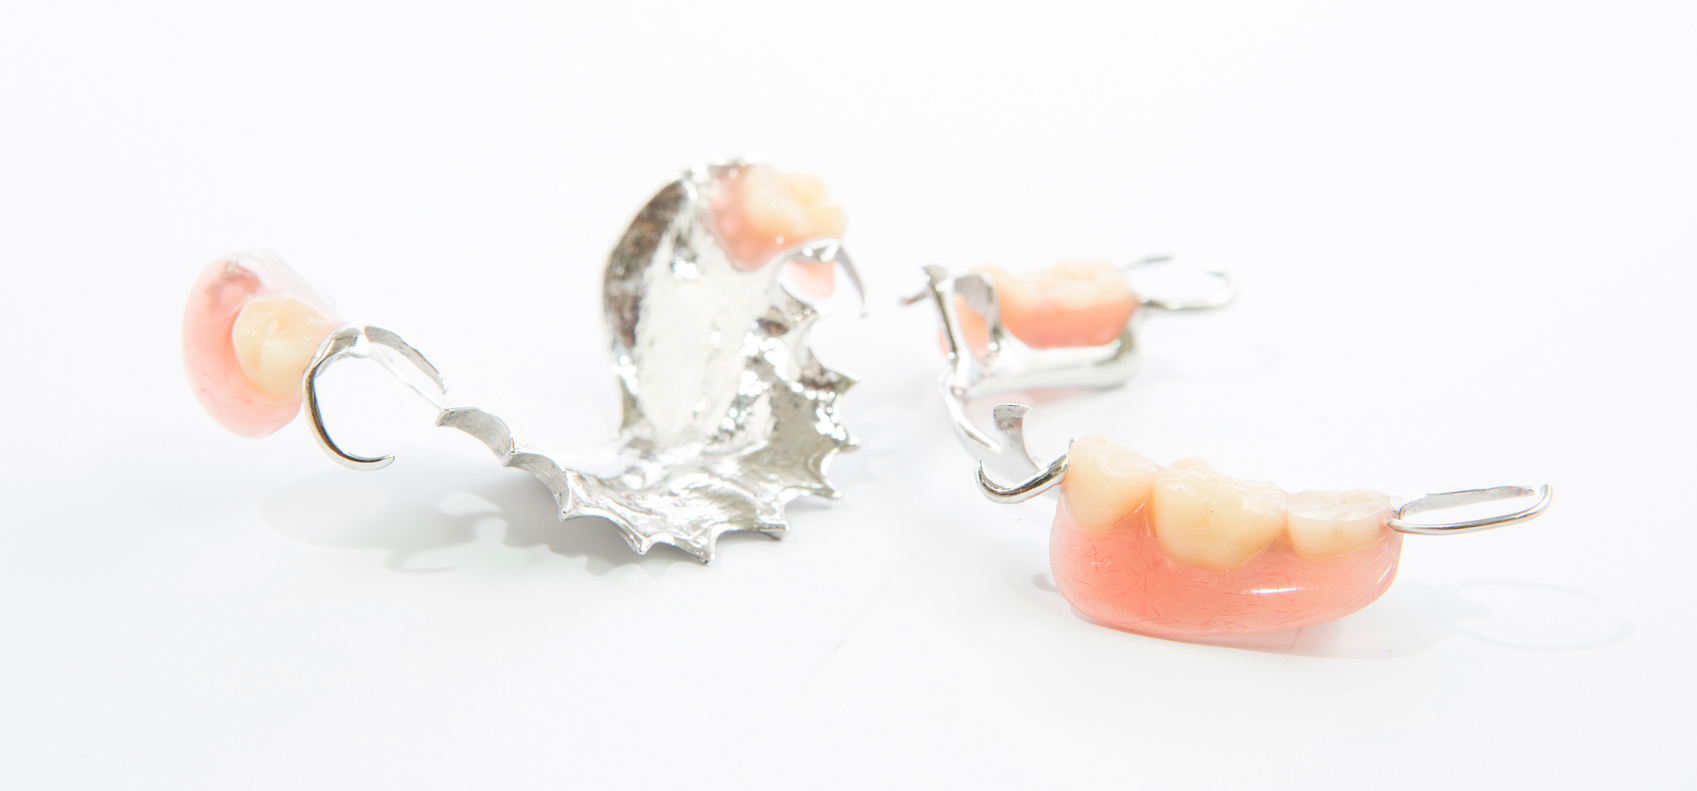 AN image of fixed partial dentures with a white background